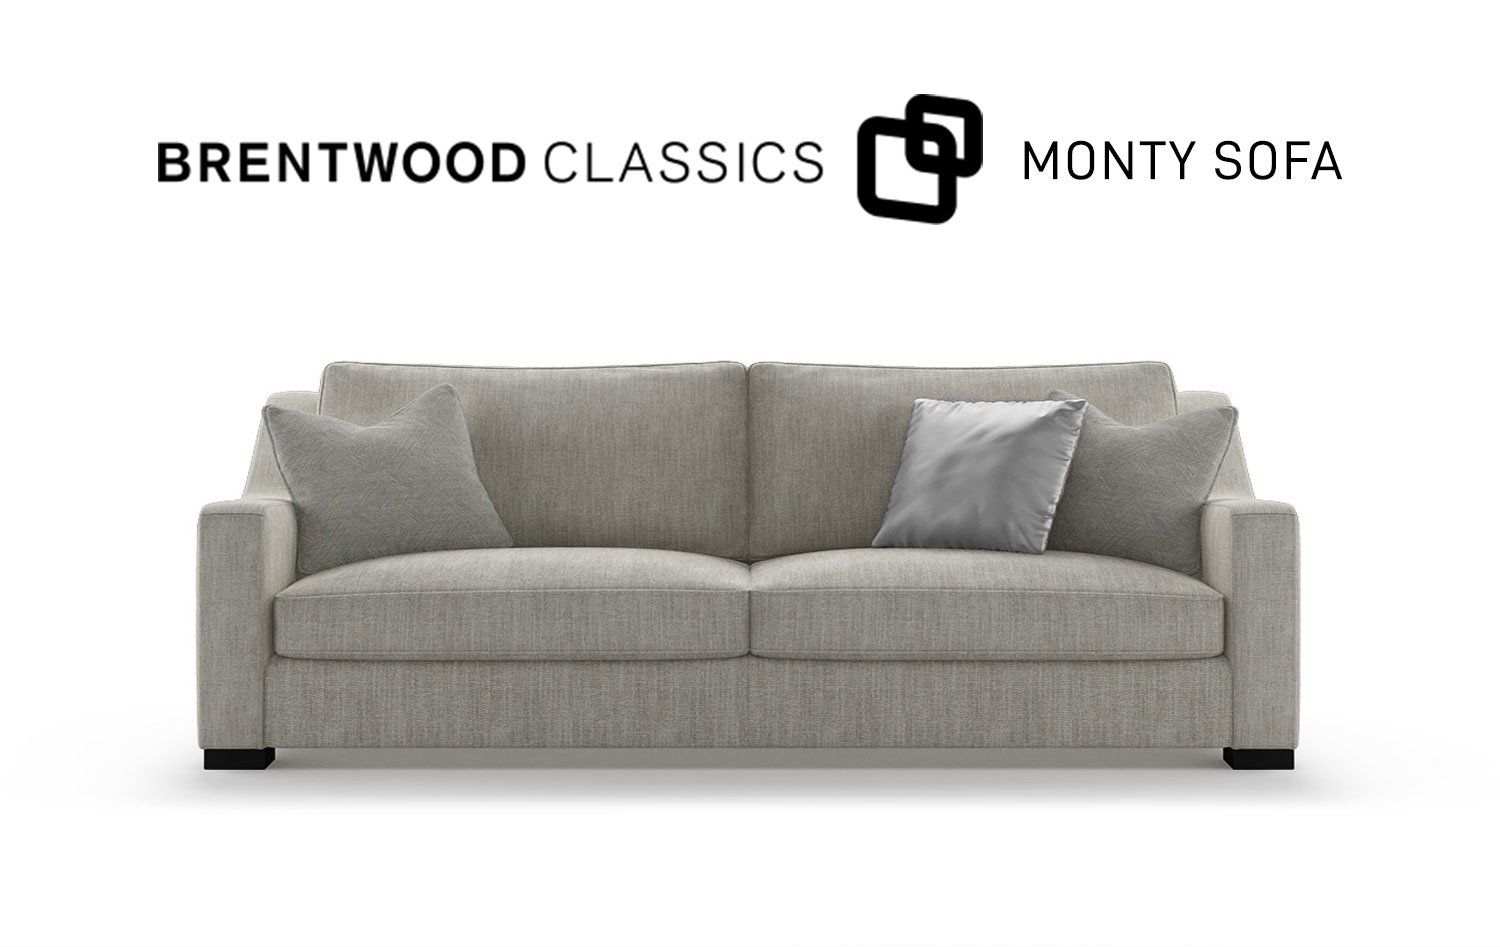 coulters brentwood classics furniture monty sofa sale Featured